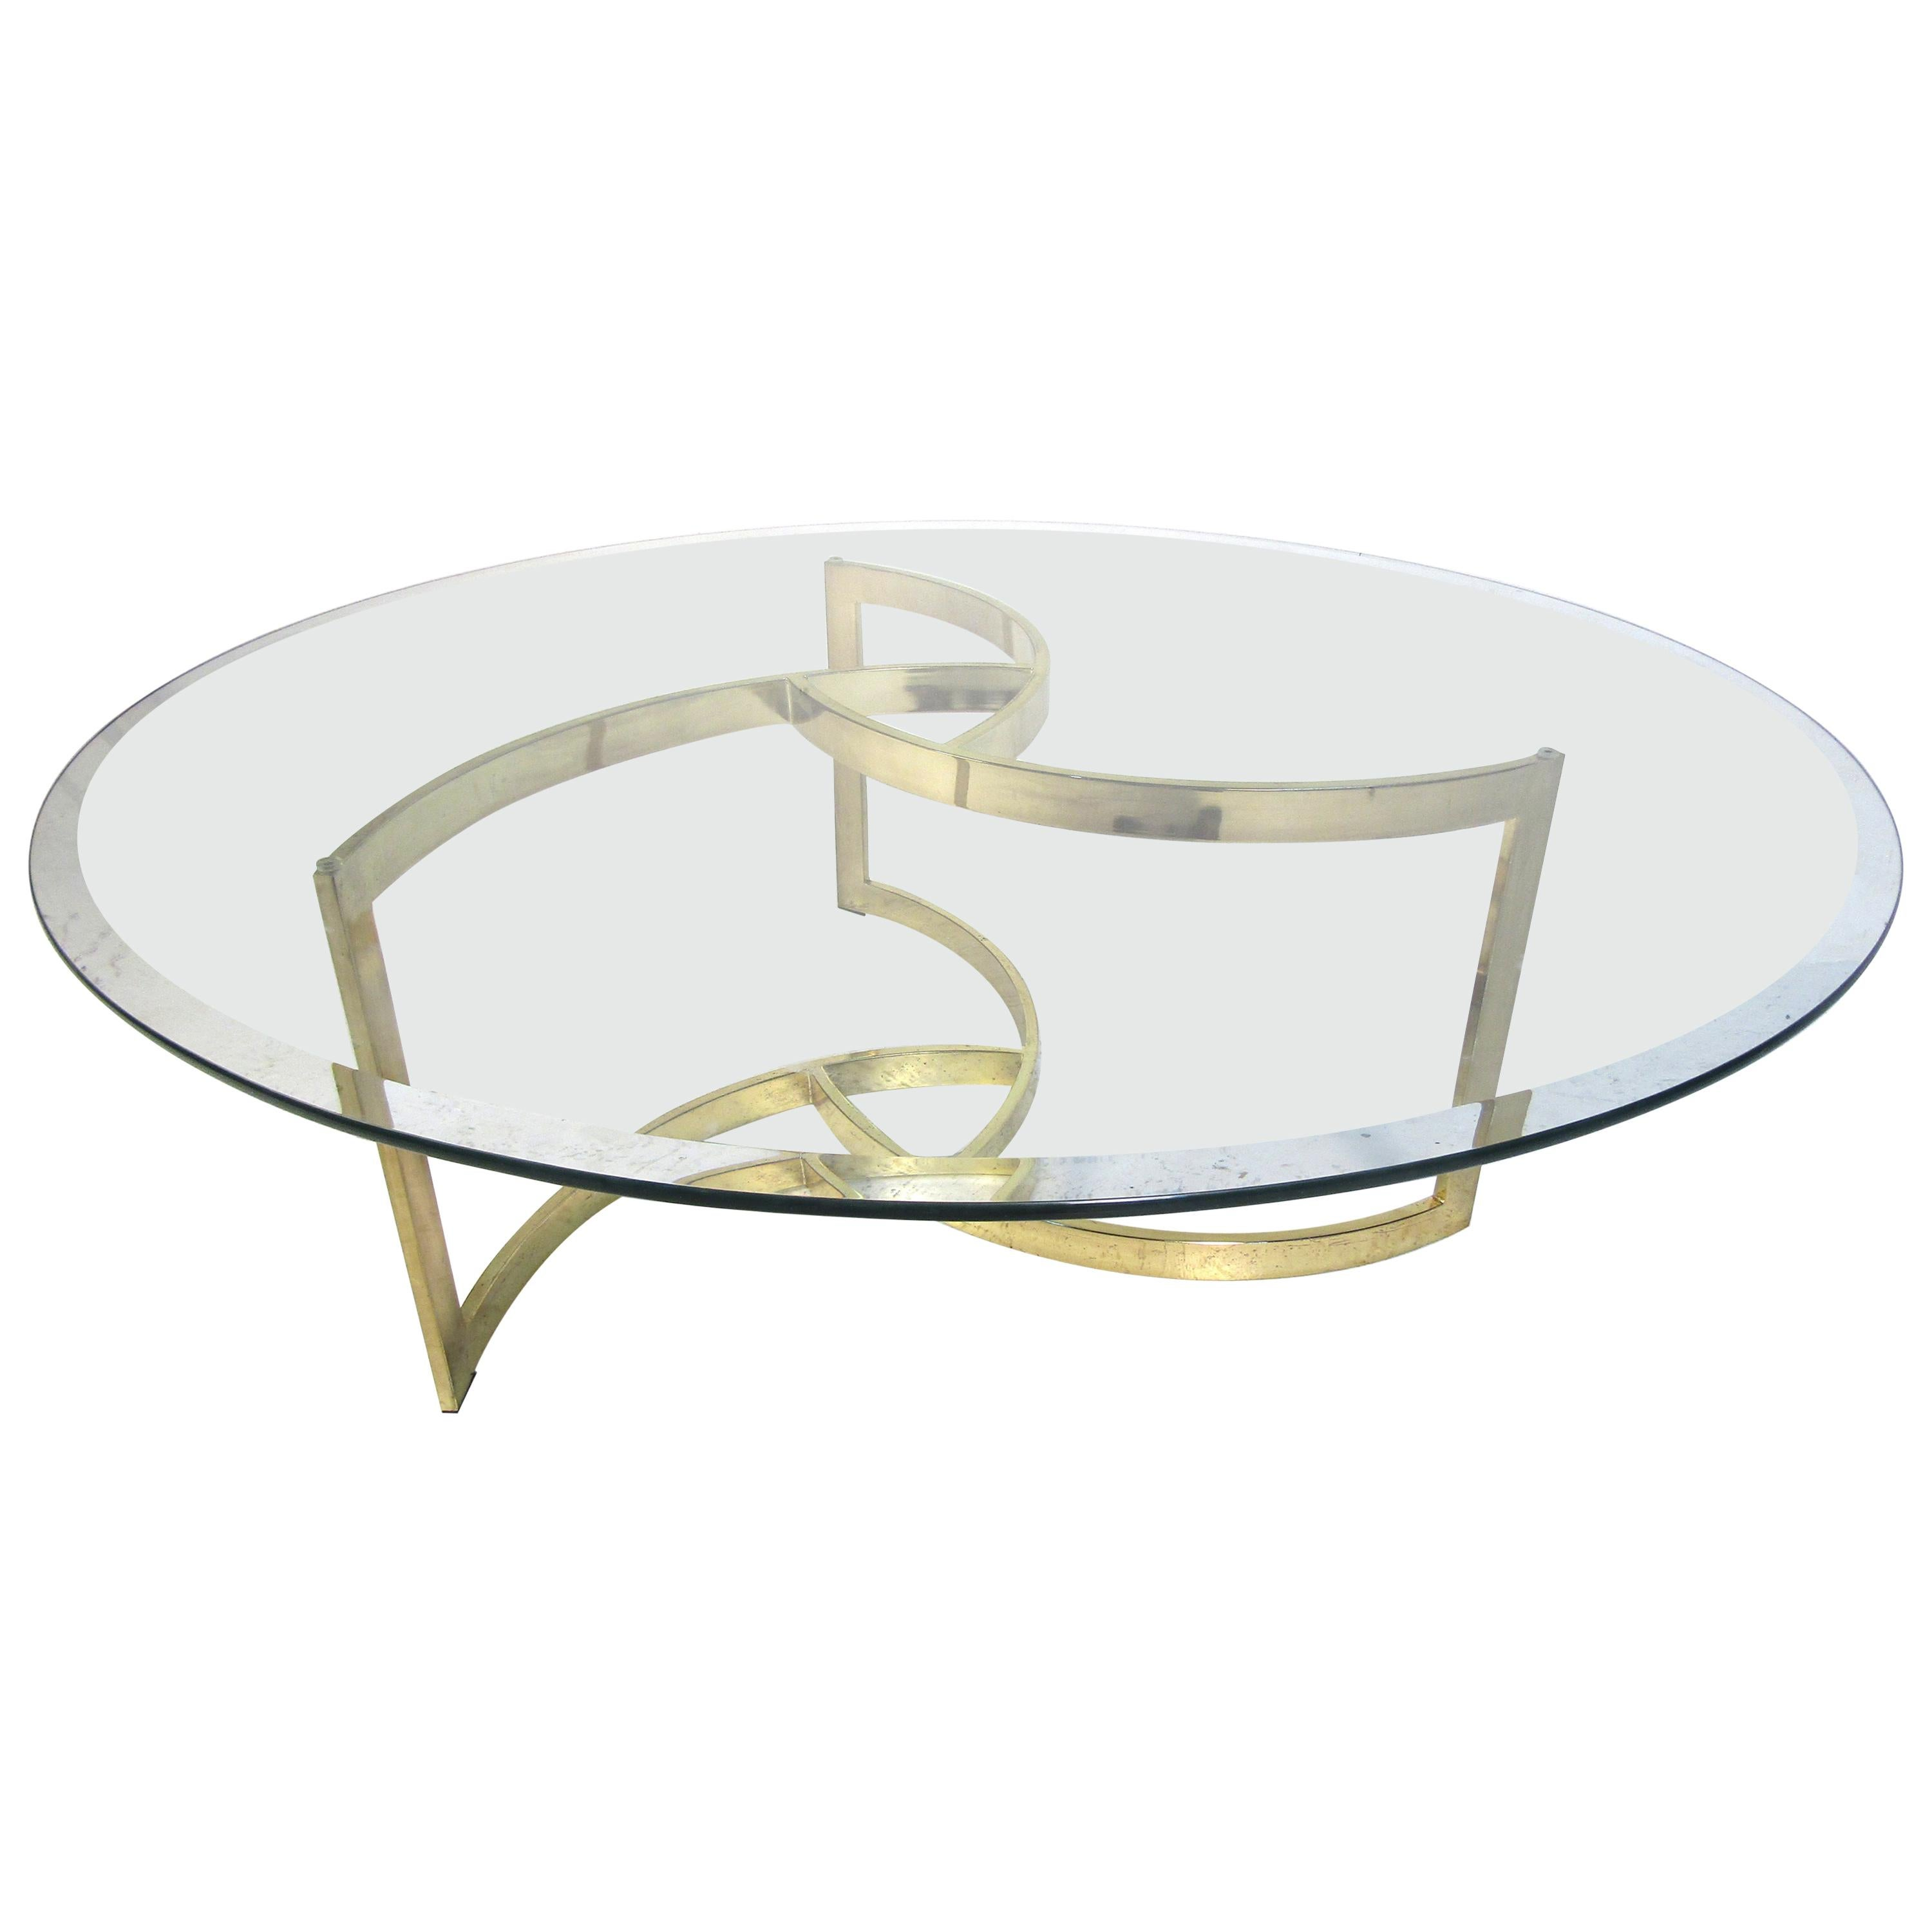 Midcentury Brass and Glass Coffee Table